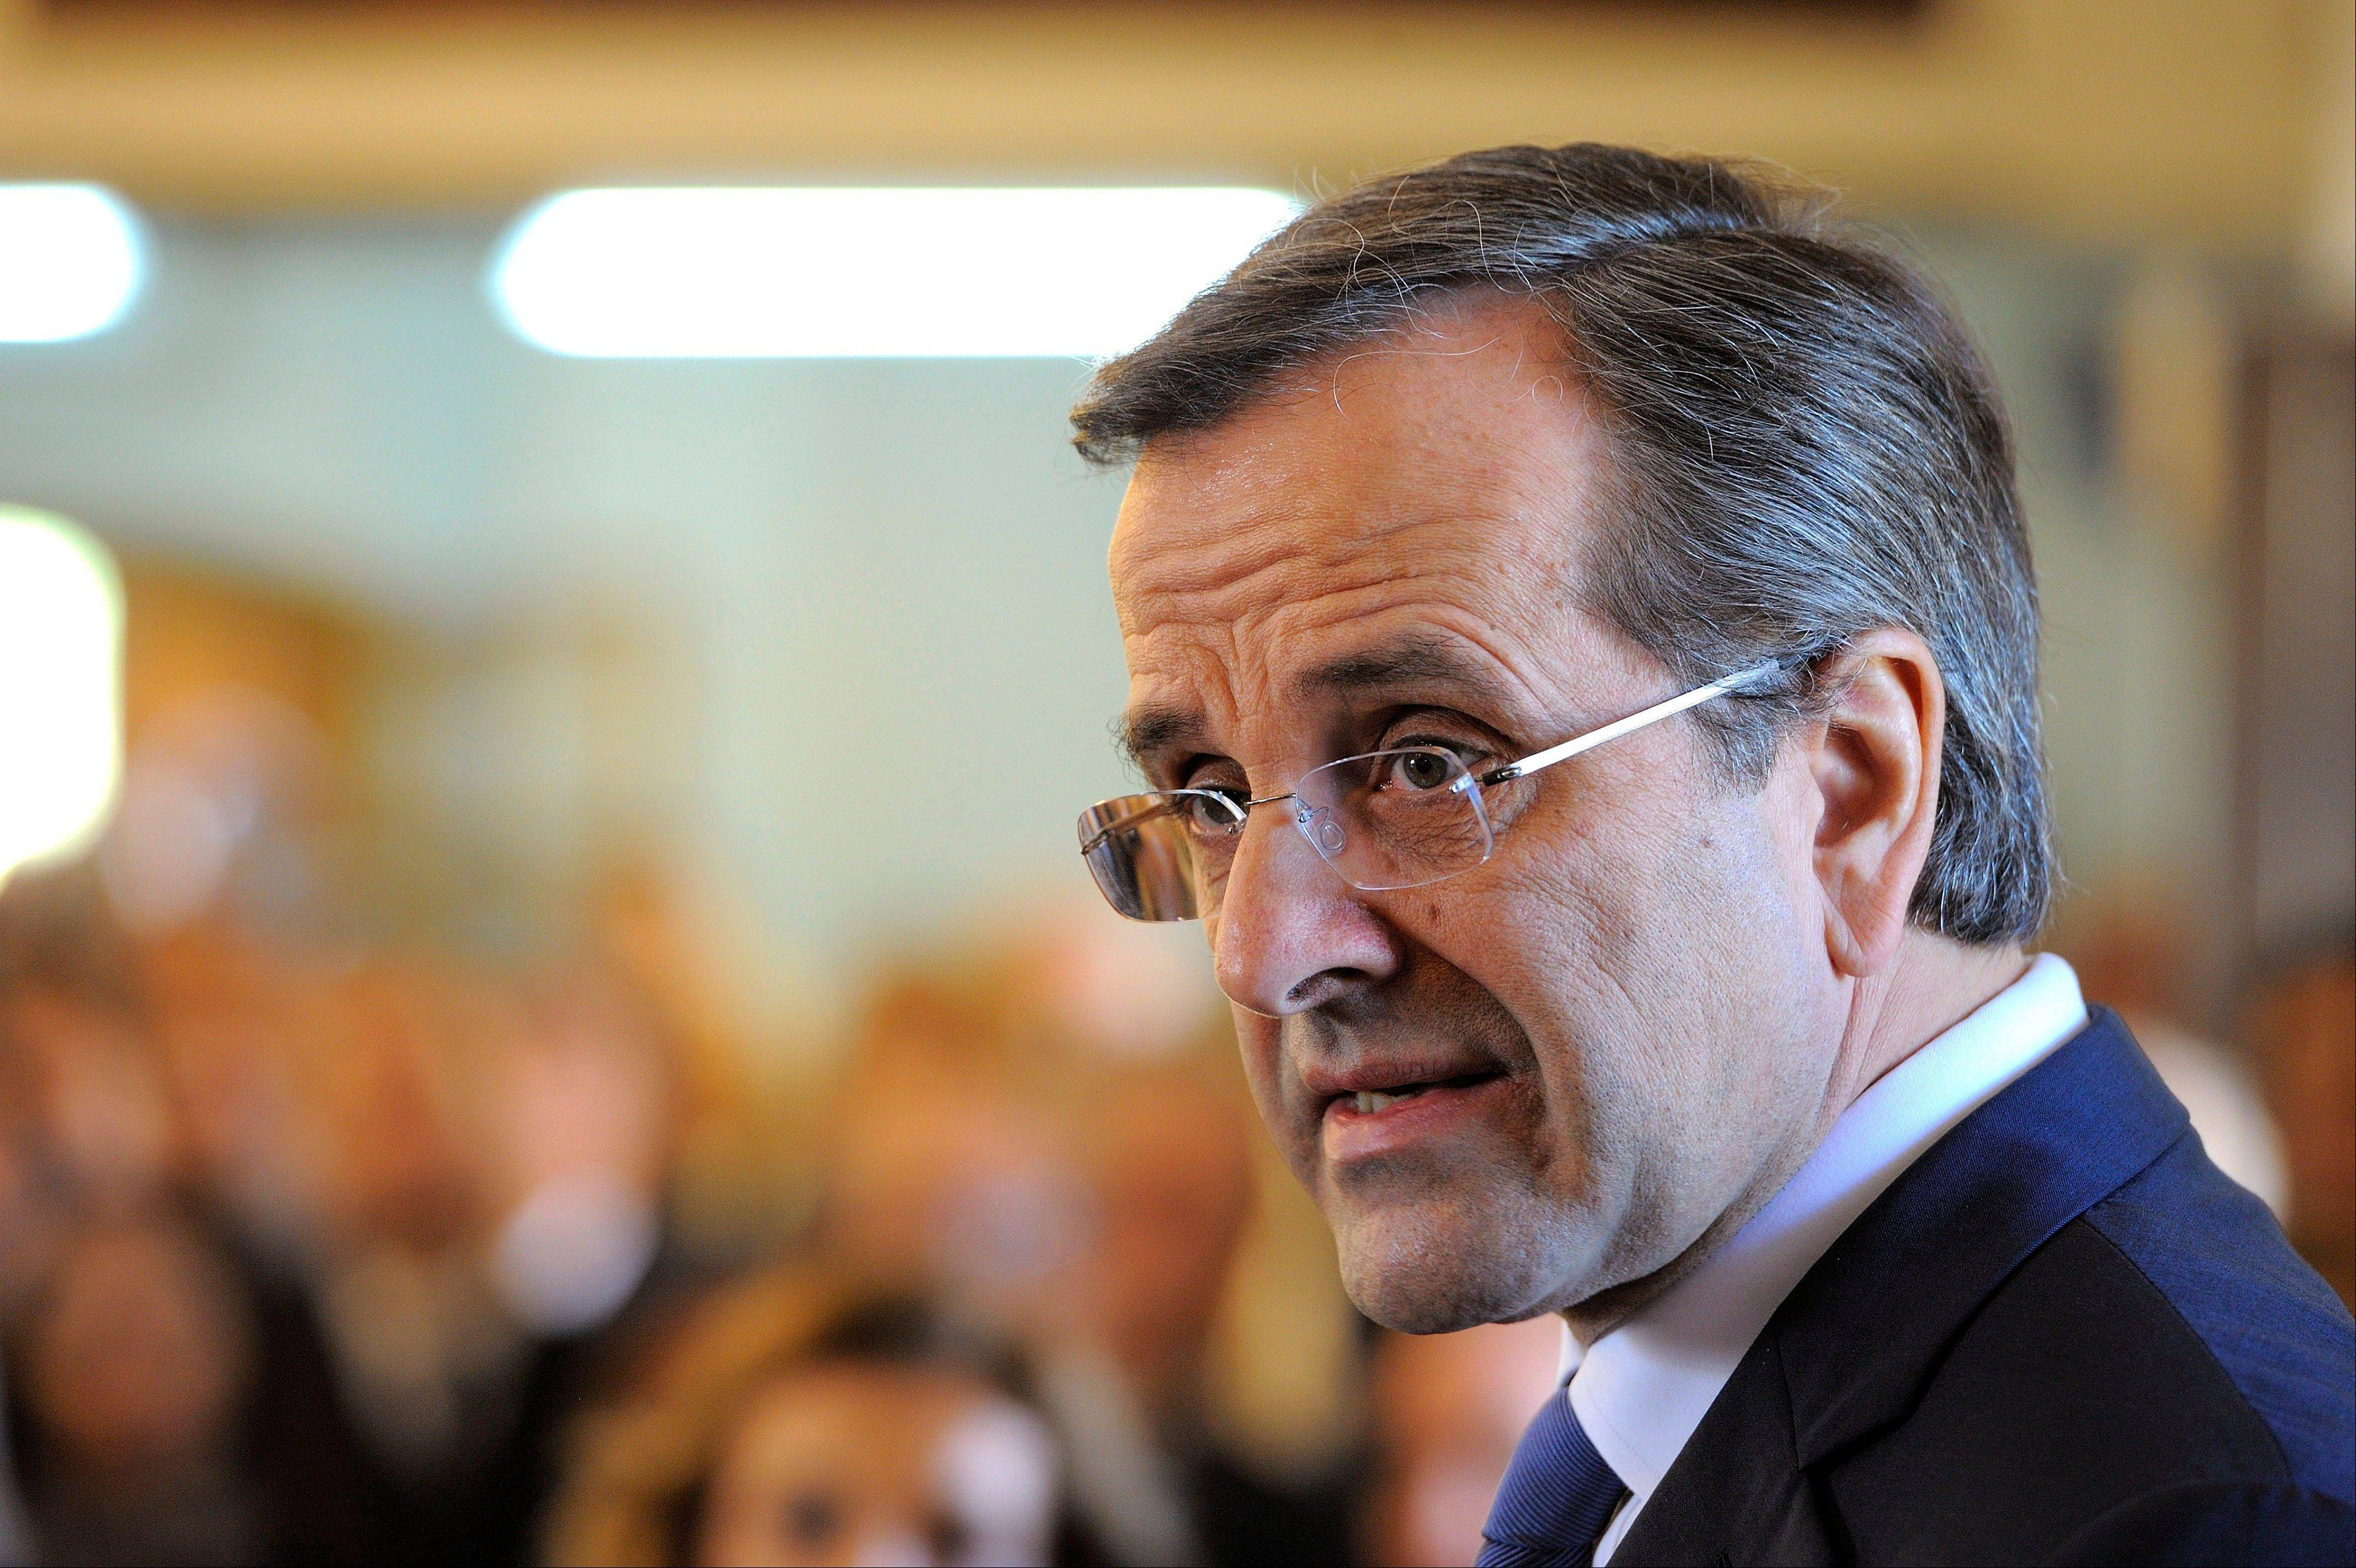 Greek Prime Minister Antonis Samaras speaks at a memorial service for Cyprus� late President Tassos Papadopoulos near the island�s capital, Nicosia, Sunday. Samaras is in Cyprus for two-day unofficial visit.